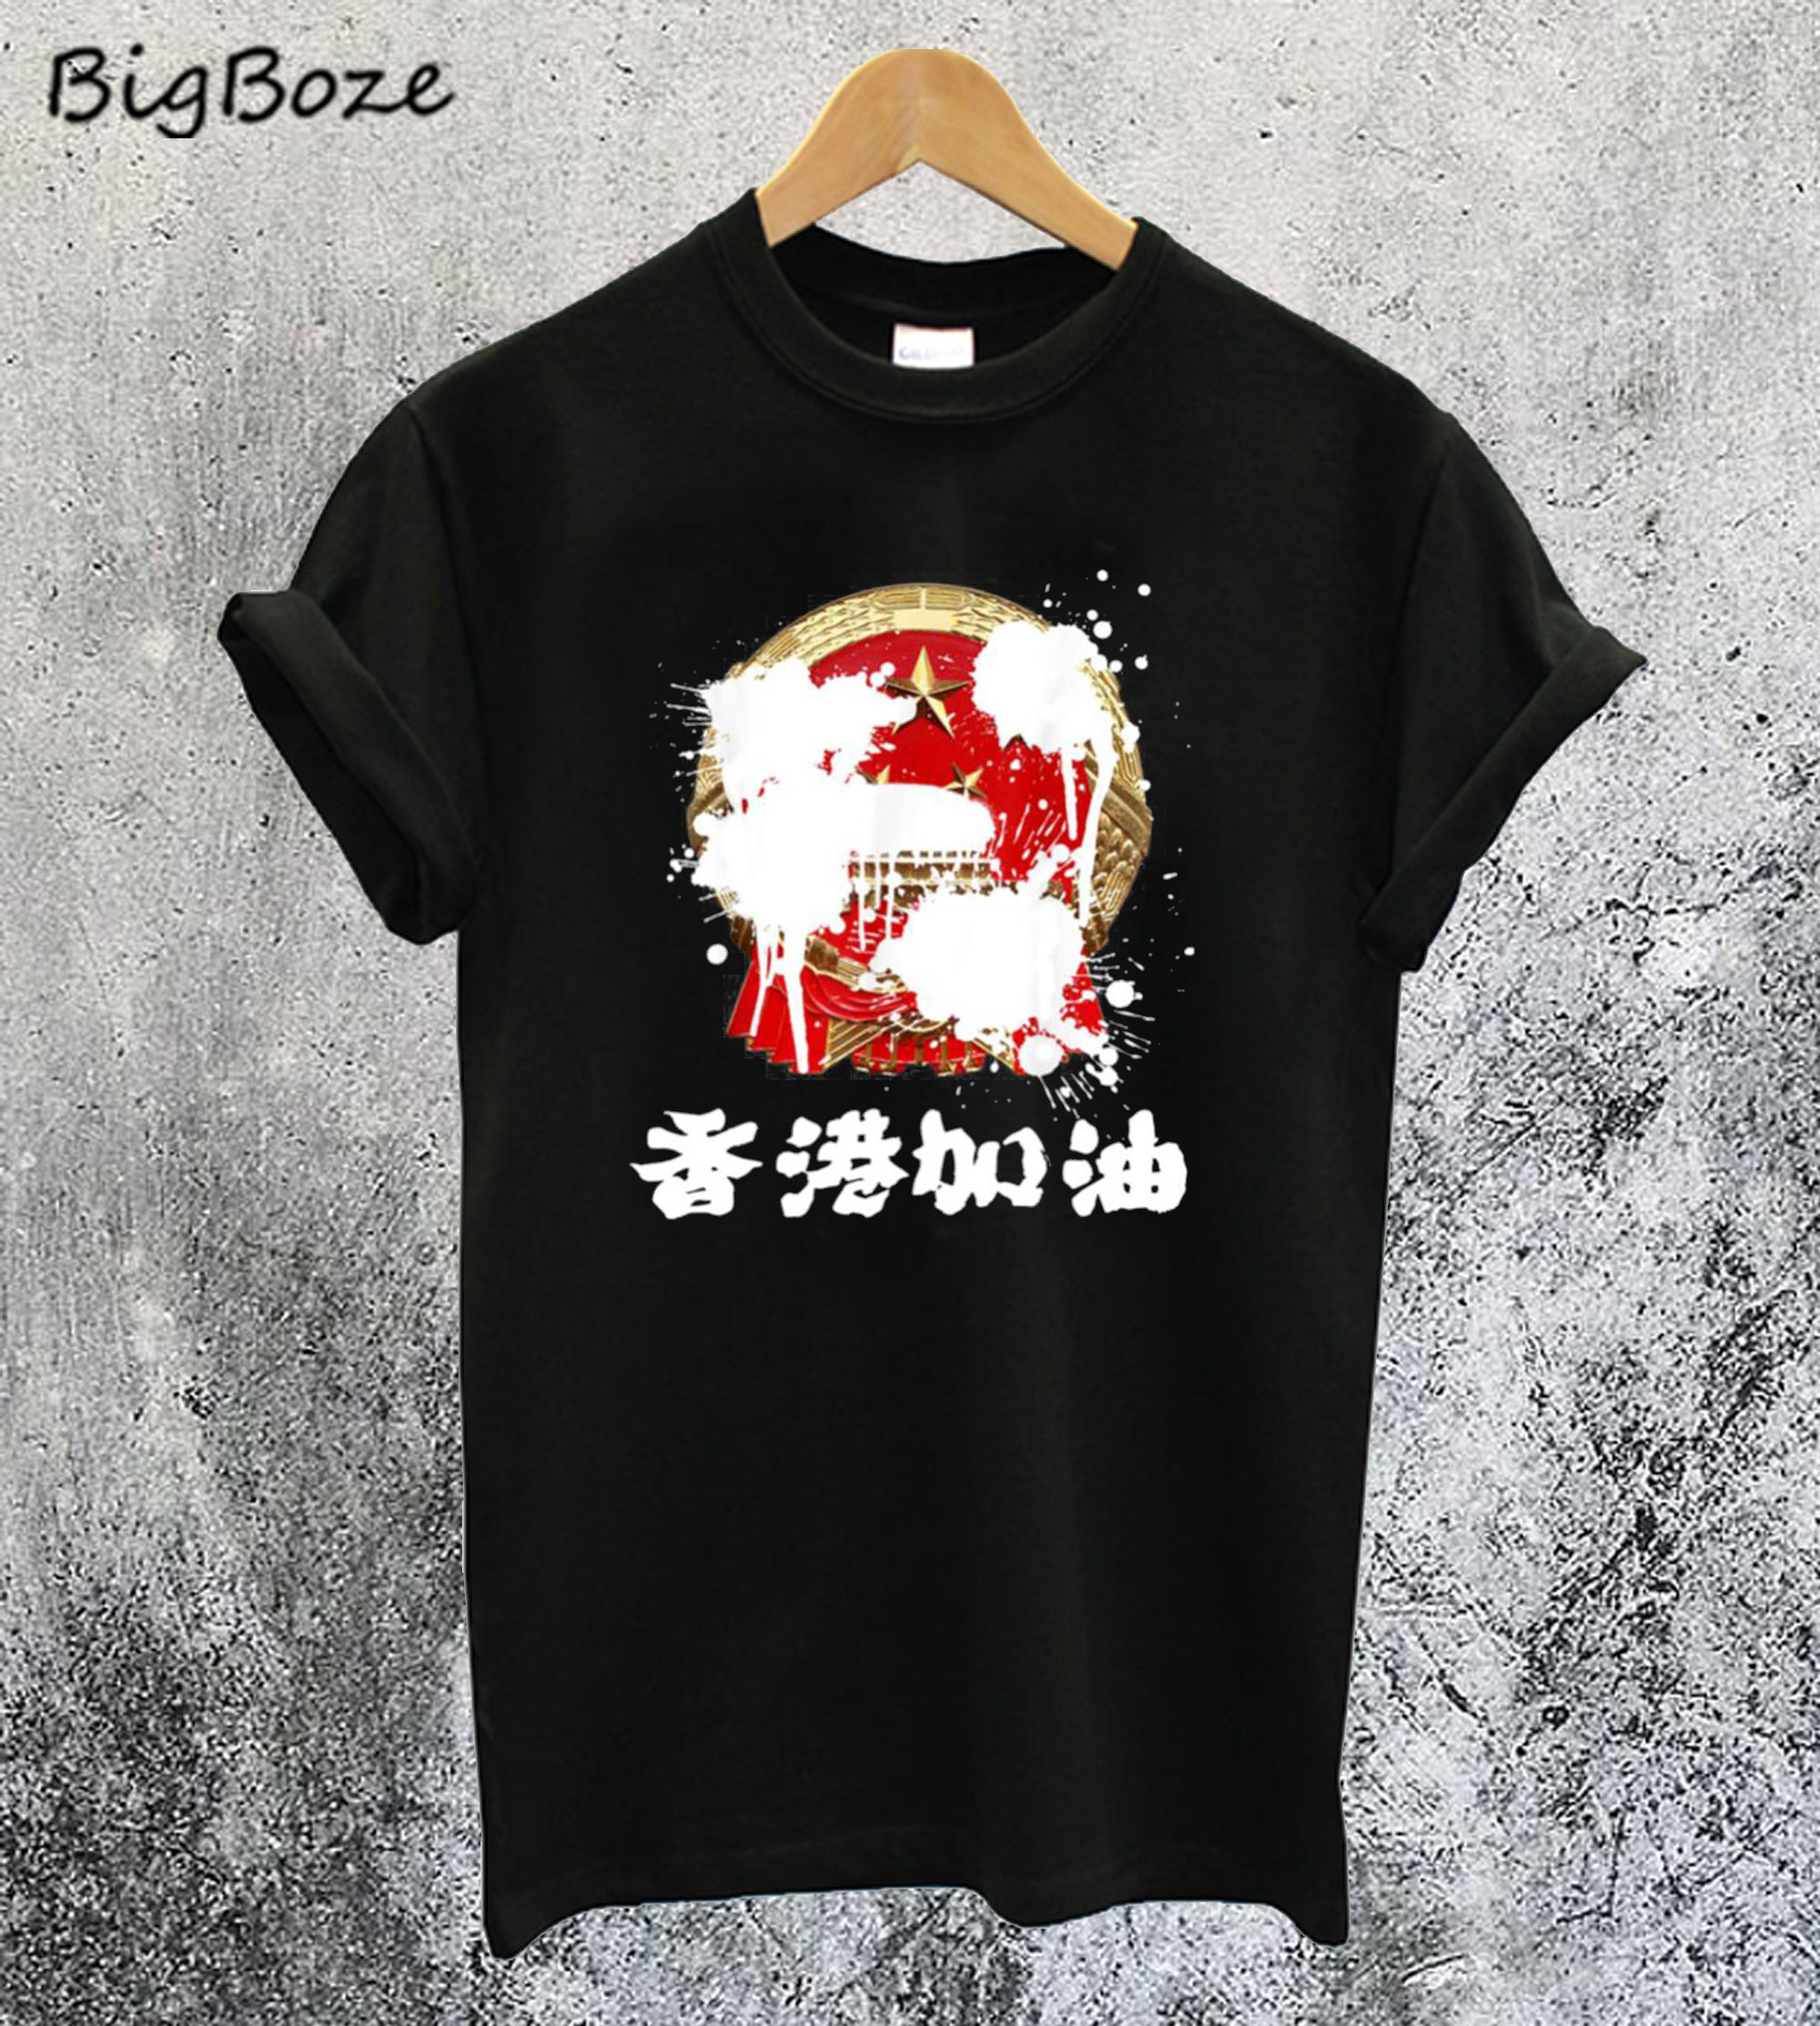 Free Hong Kong T-Shirt